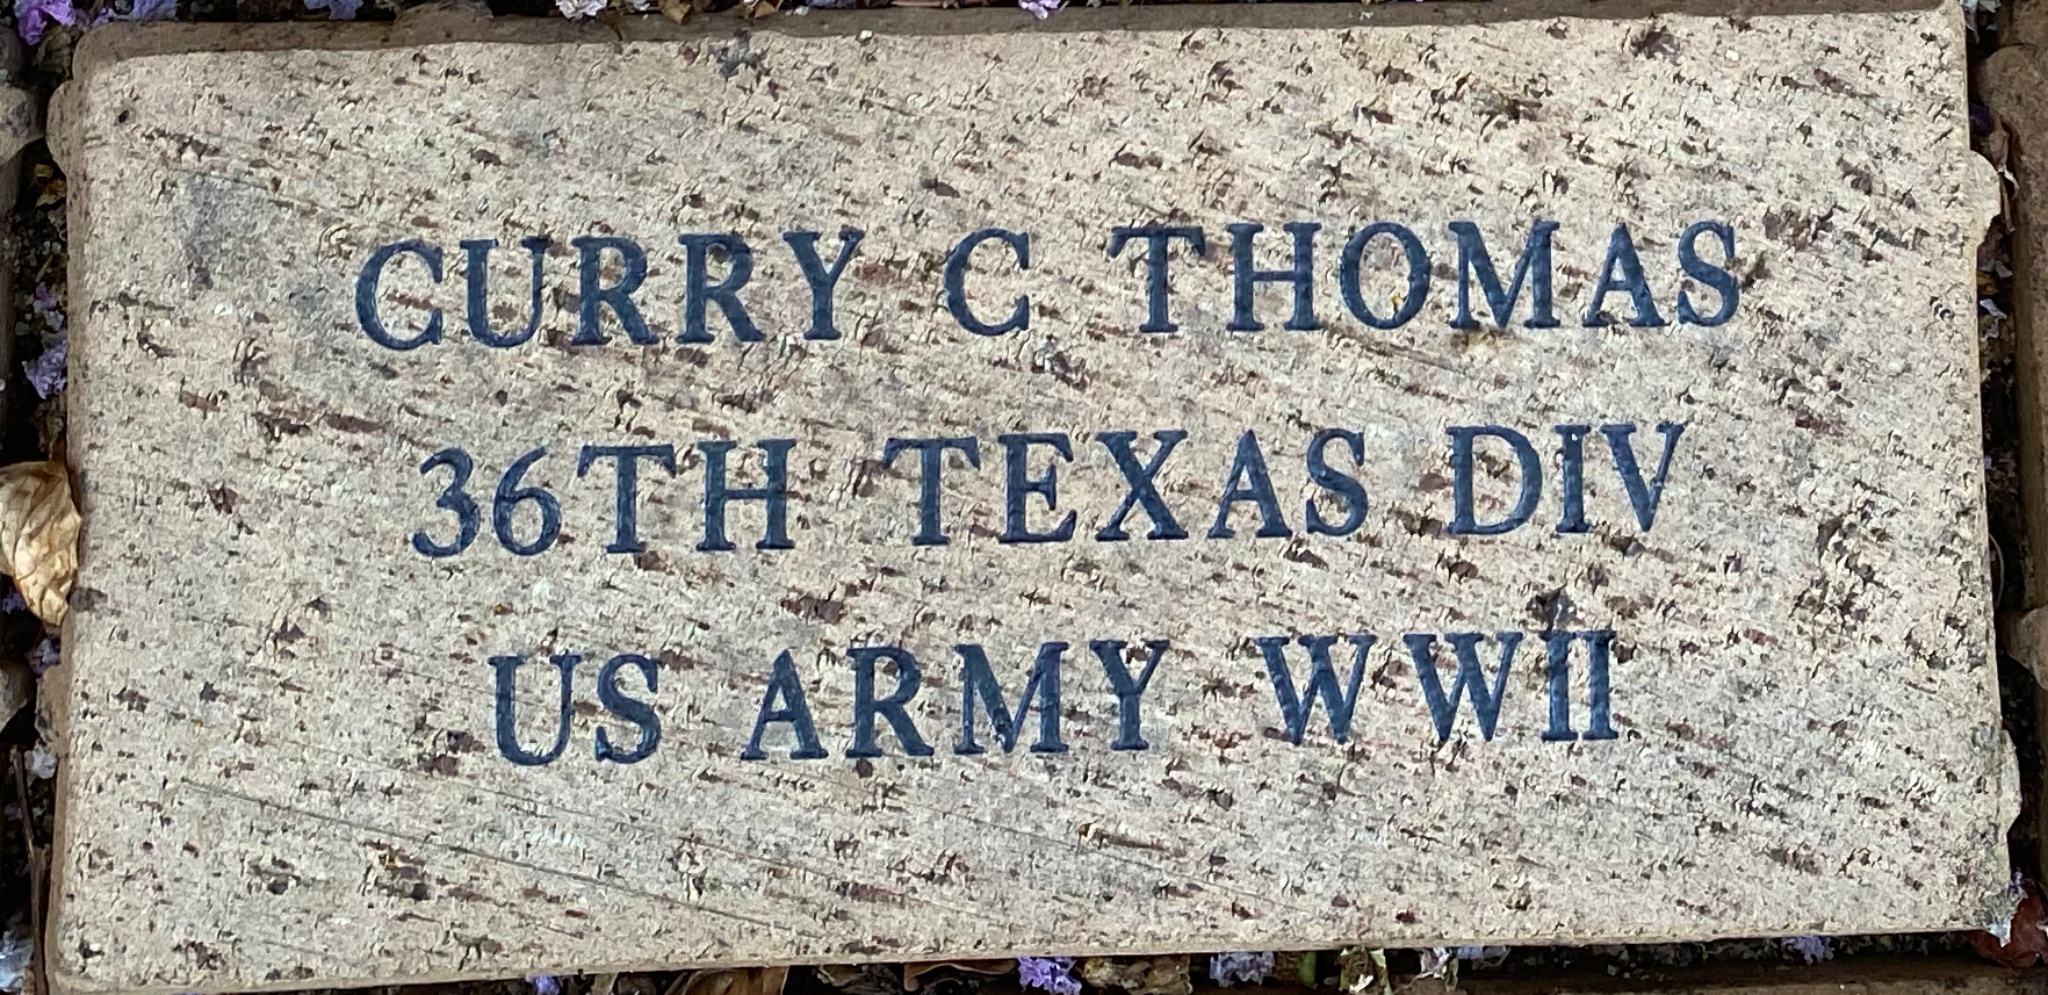 CURRY C THOMAS 36TH TEXAS DIV US ARMY WWII